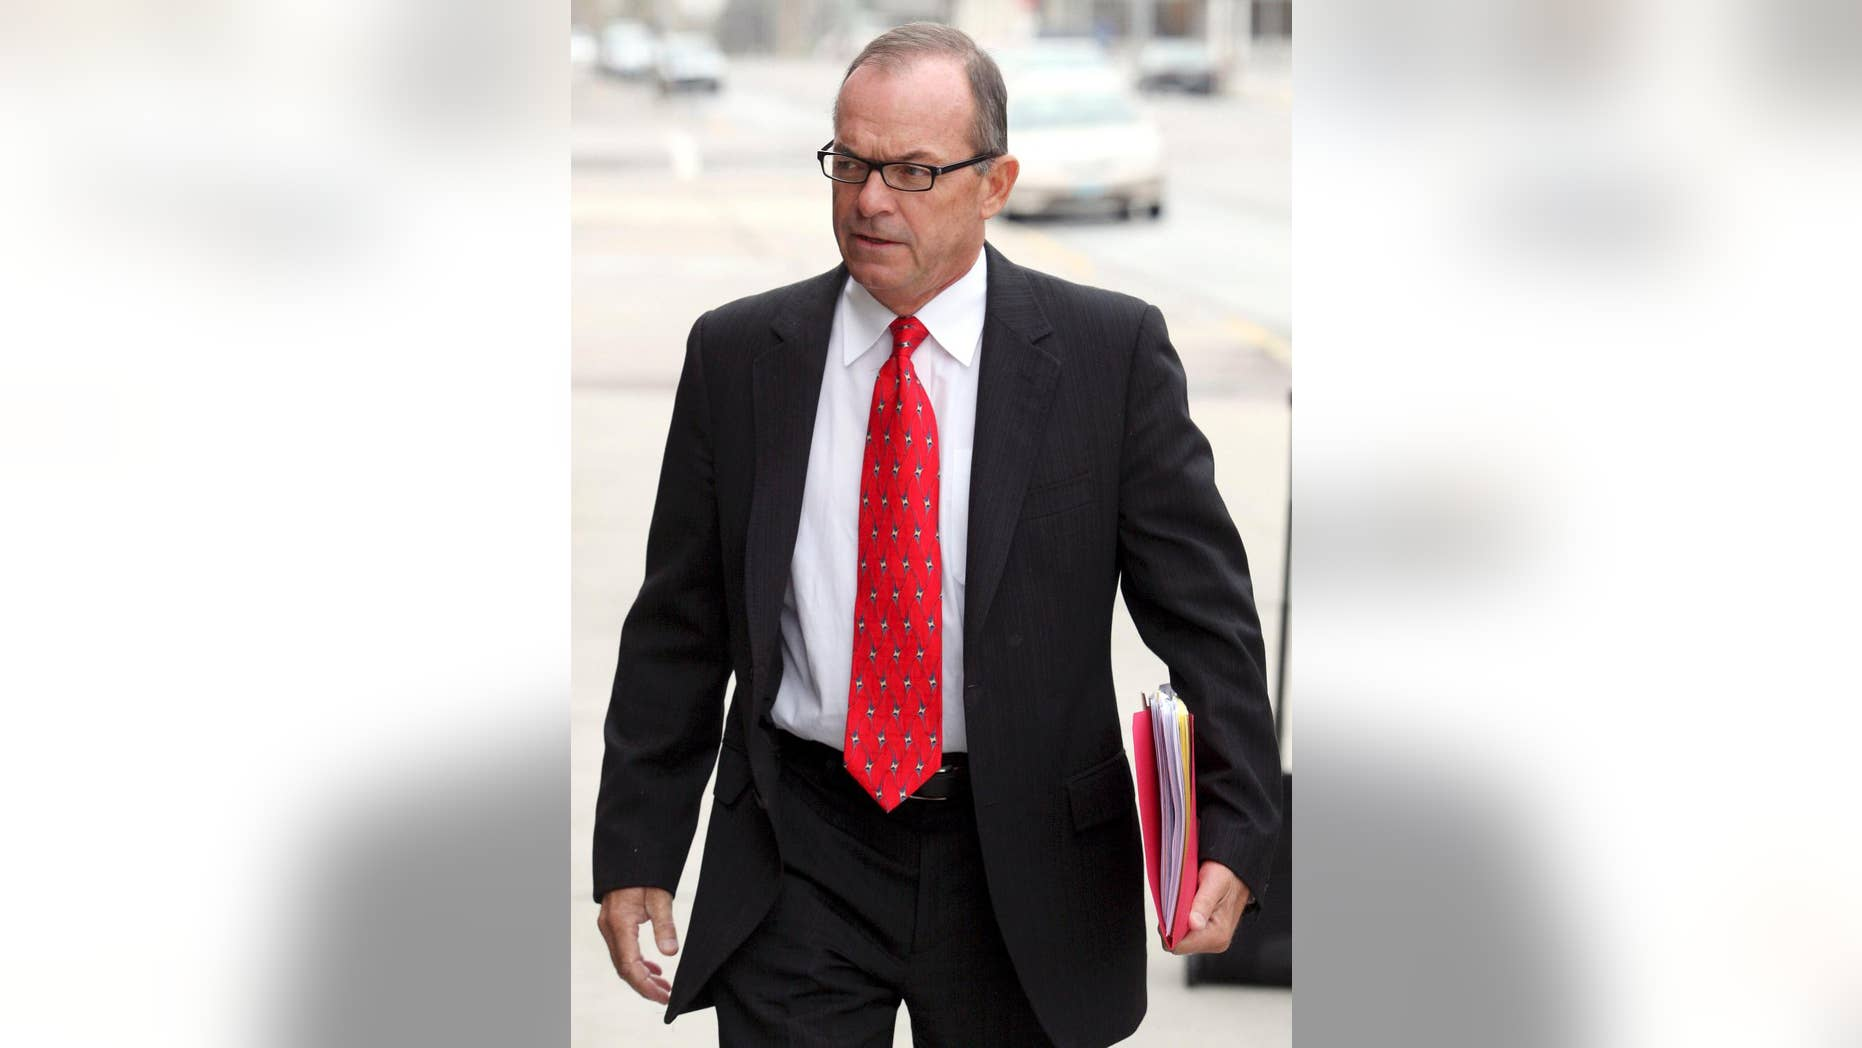 FILE - In this April 29, 2009, file photo, Tim Blixseth arrives at the federal courthouse in Missoula, Mont. The one-time billionaire is due in federal court in Butte, Mont., Thursday, Dec. 18, 2014, to explain why failed to comply with an order to pay $13.8 million to the creditors of an ultra-luxury Montana resort. (AP Photo/Mike Albans, File)